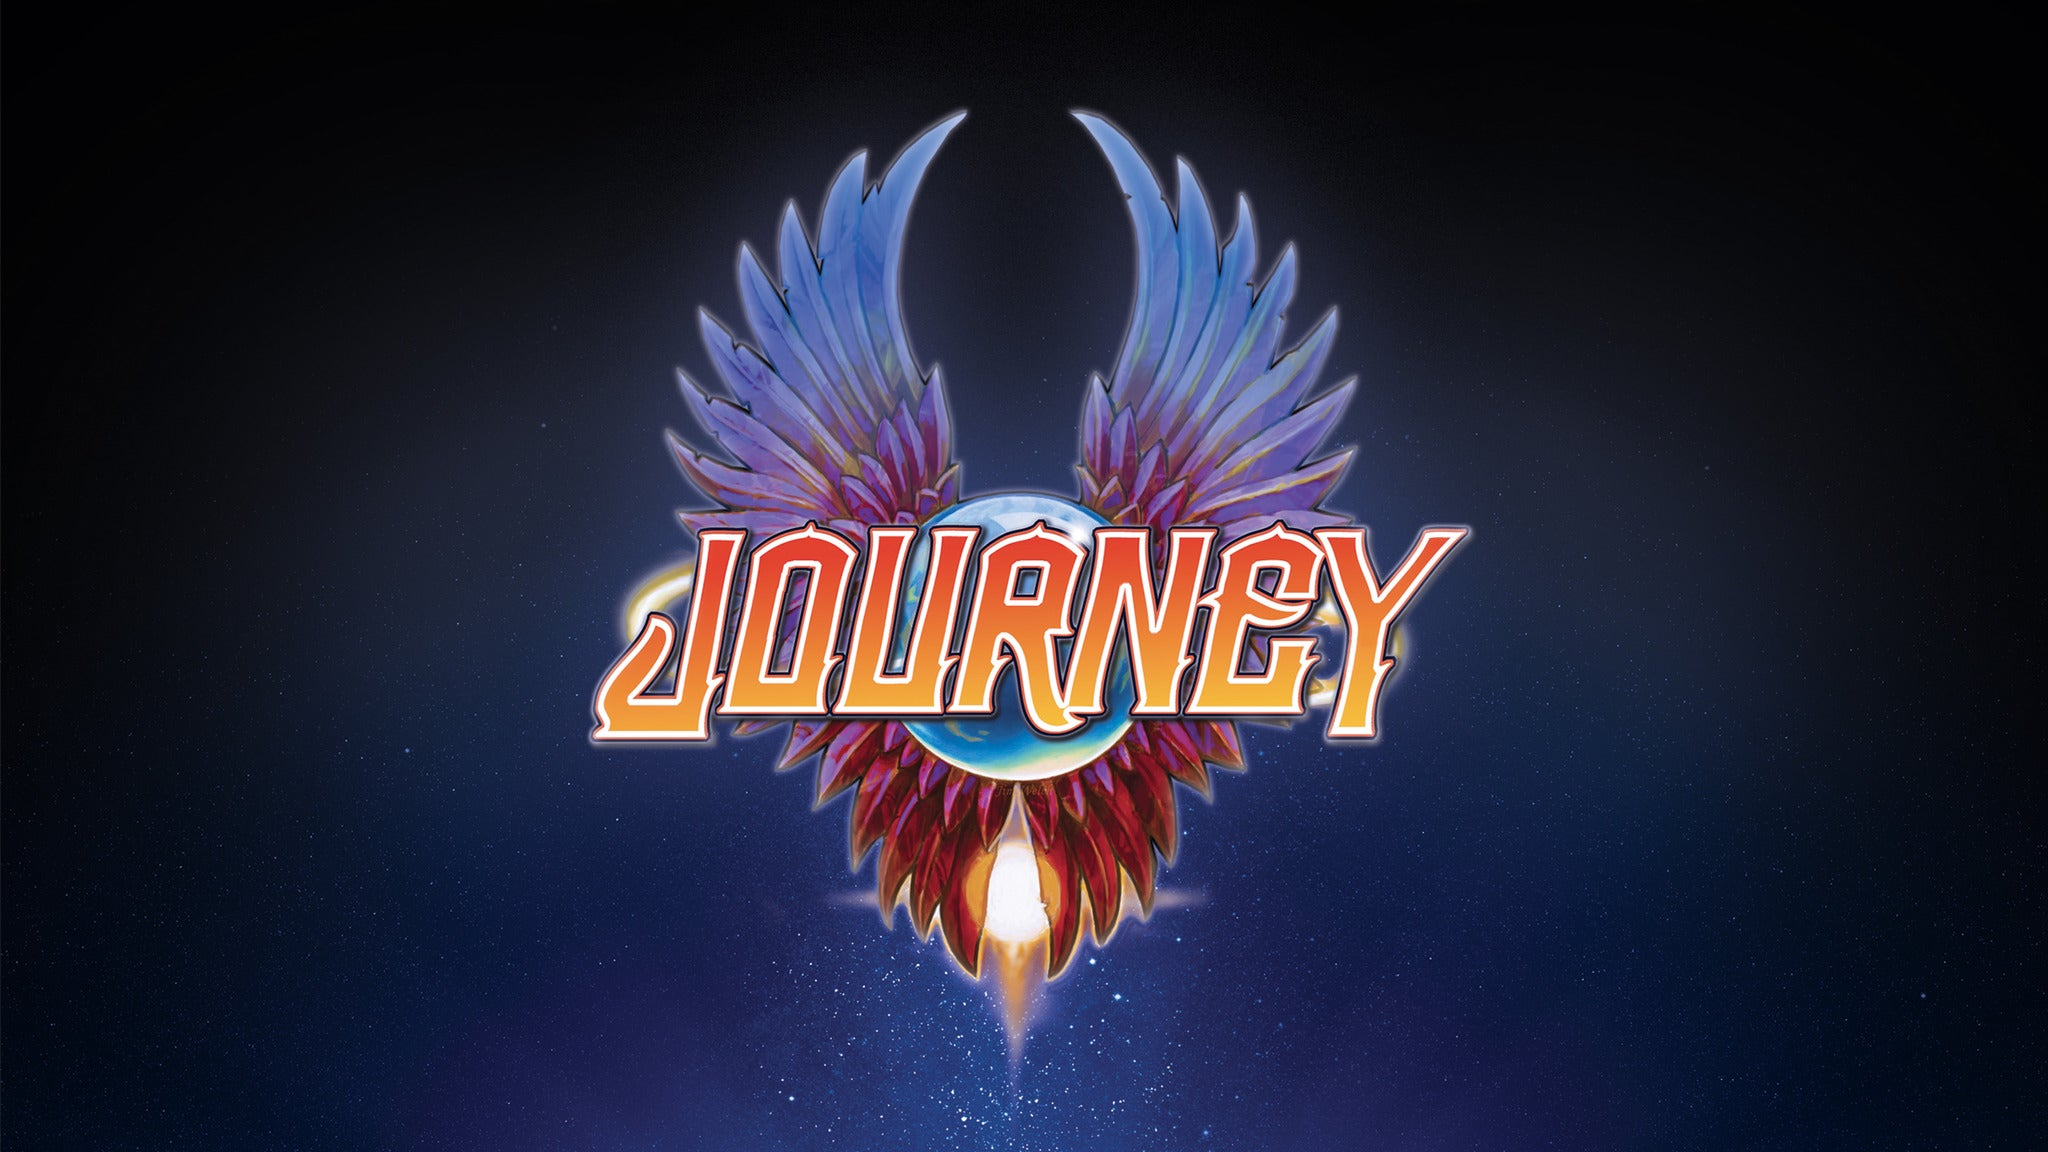 Live Nation Presents Journey / Def Leppard at The Forum